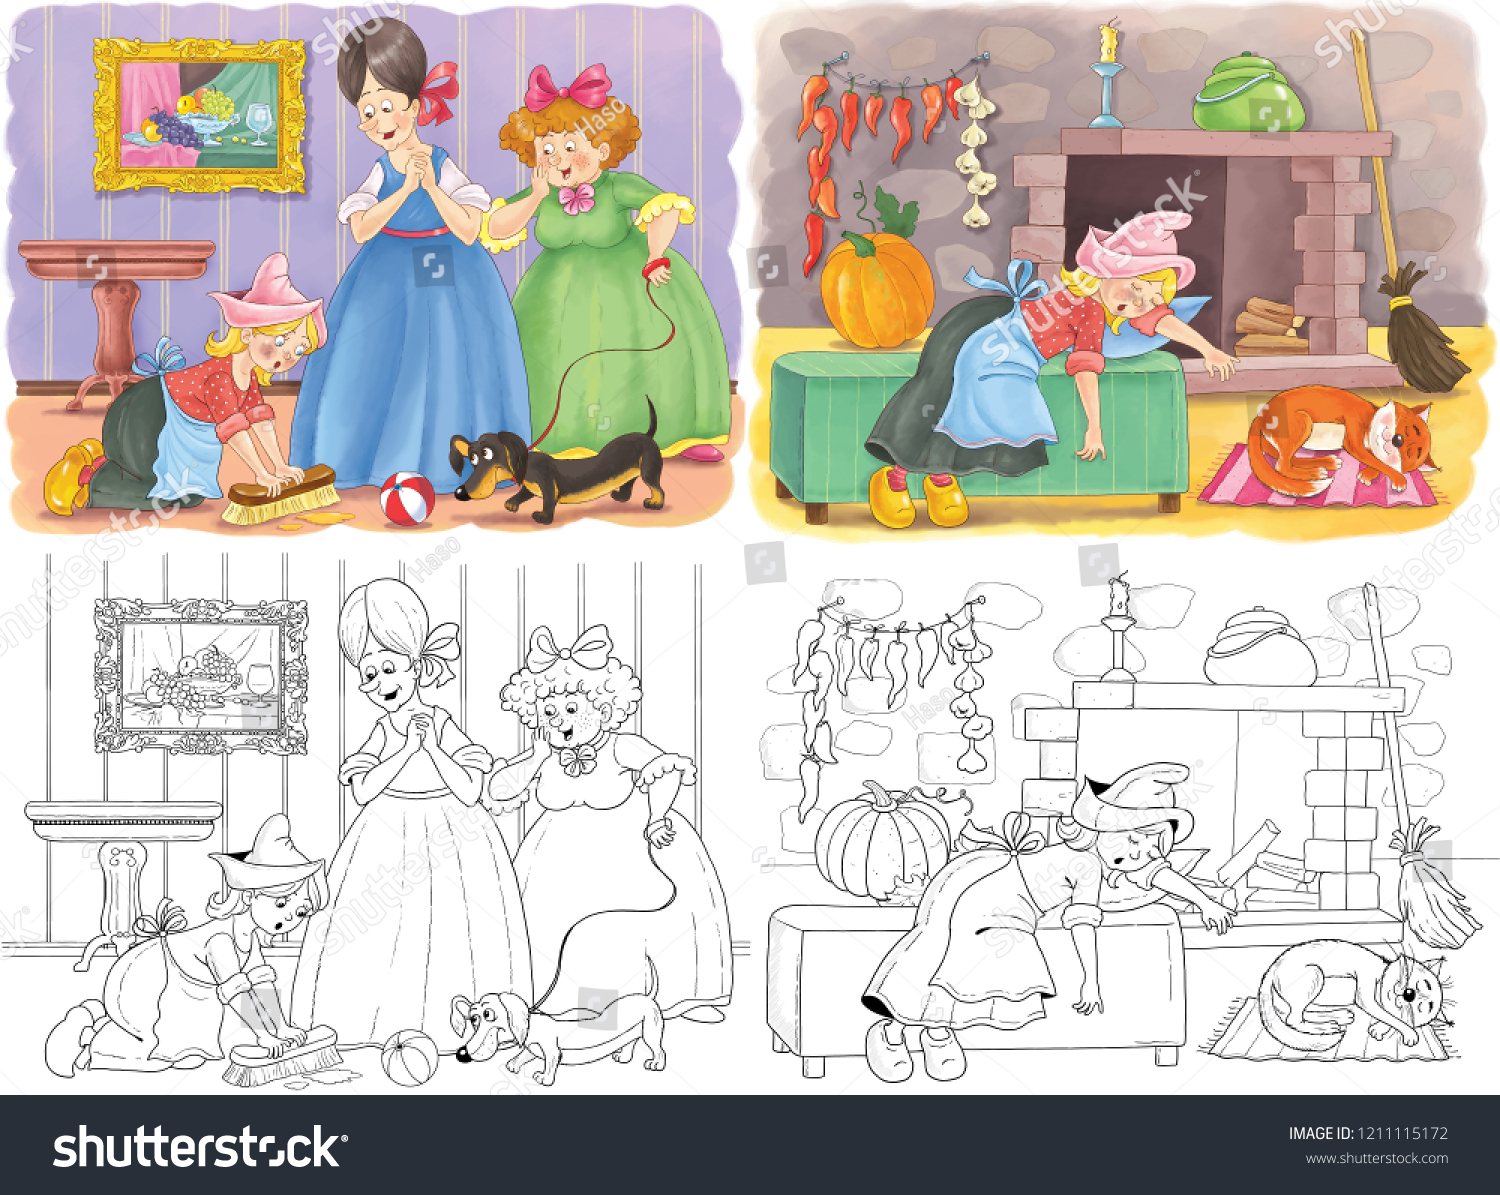 Cinderella Fairy Tale Coloring Page Coloring Stock Illustration ...